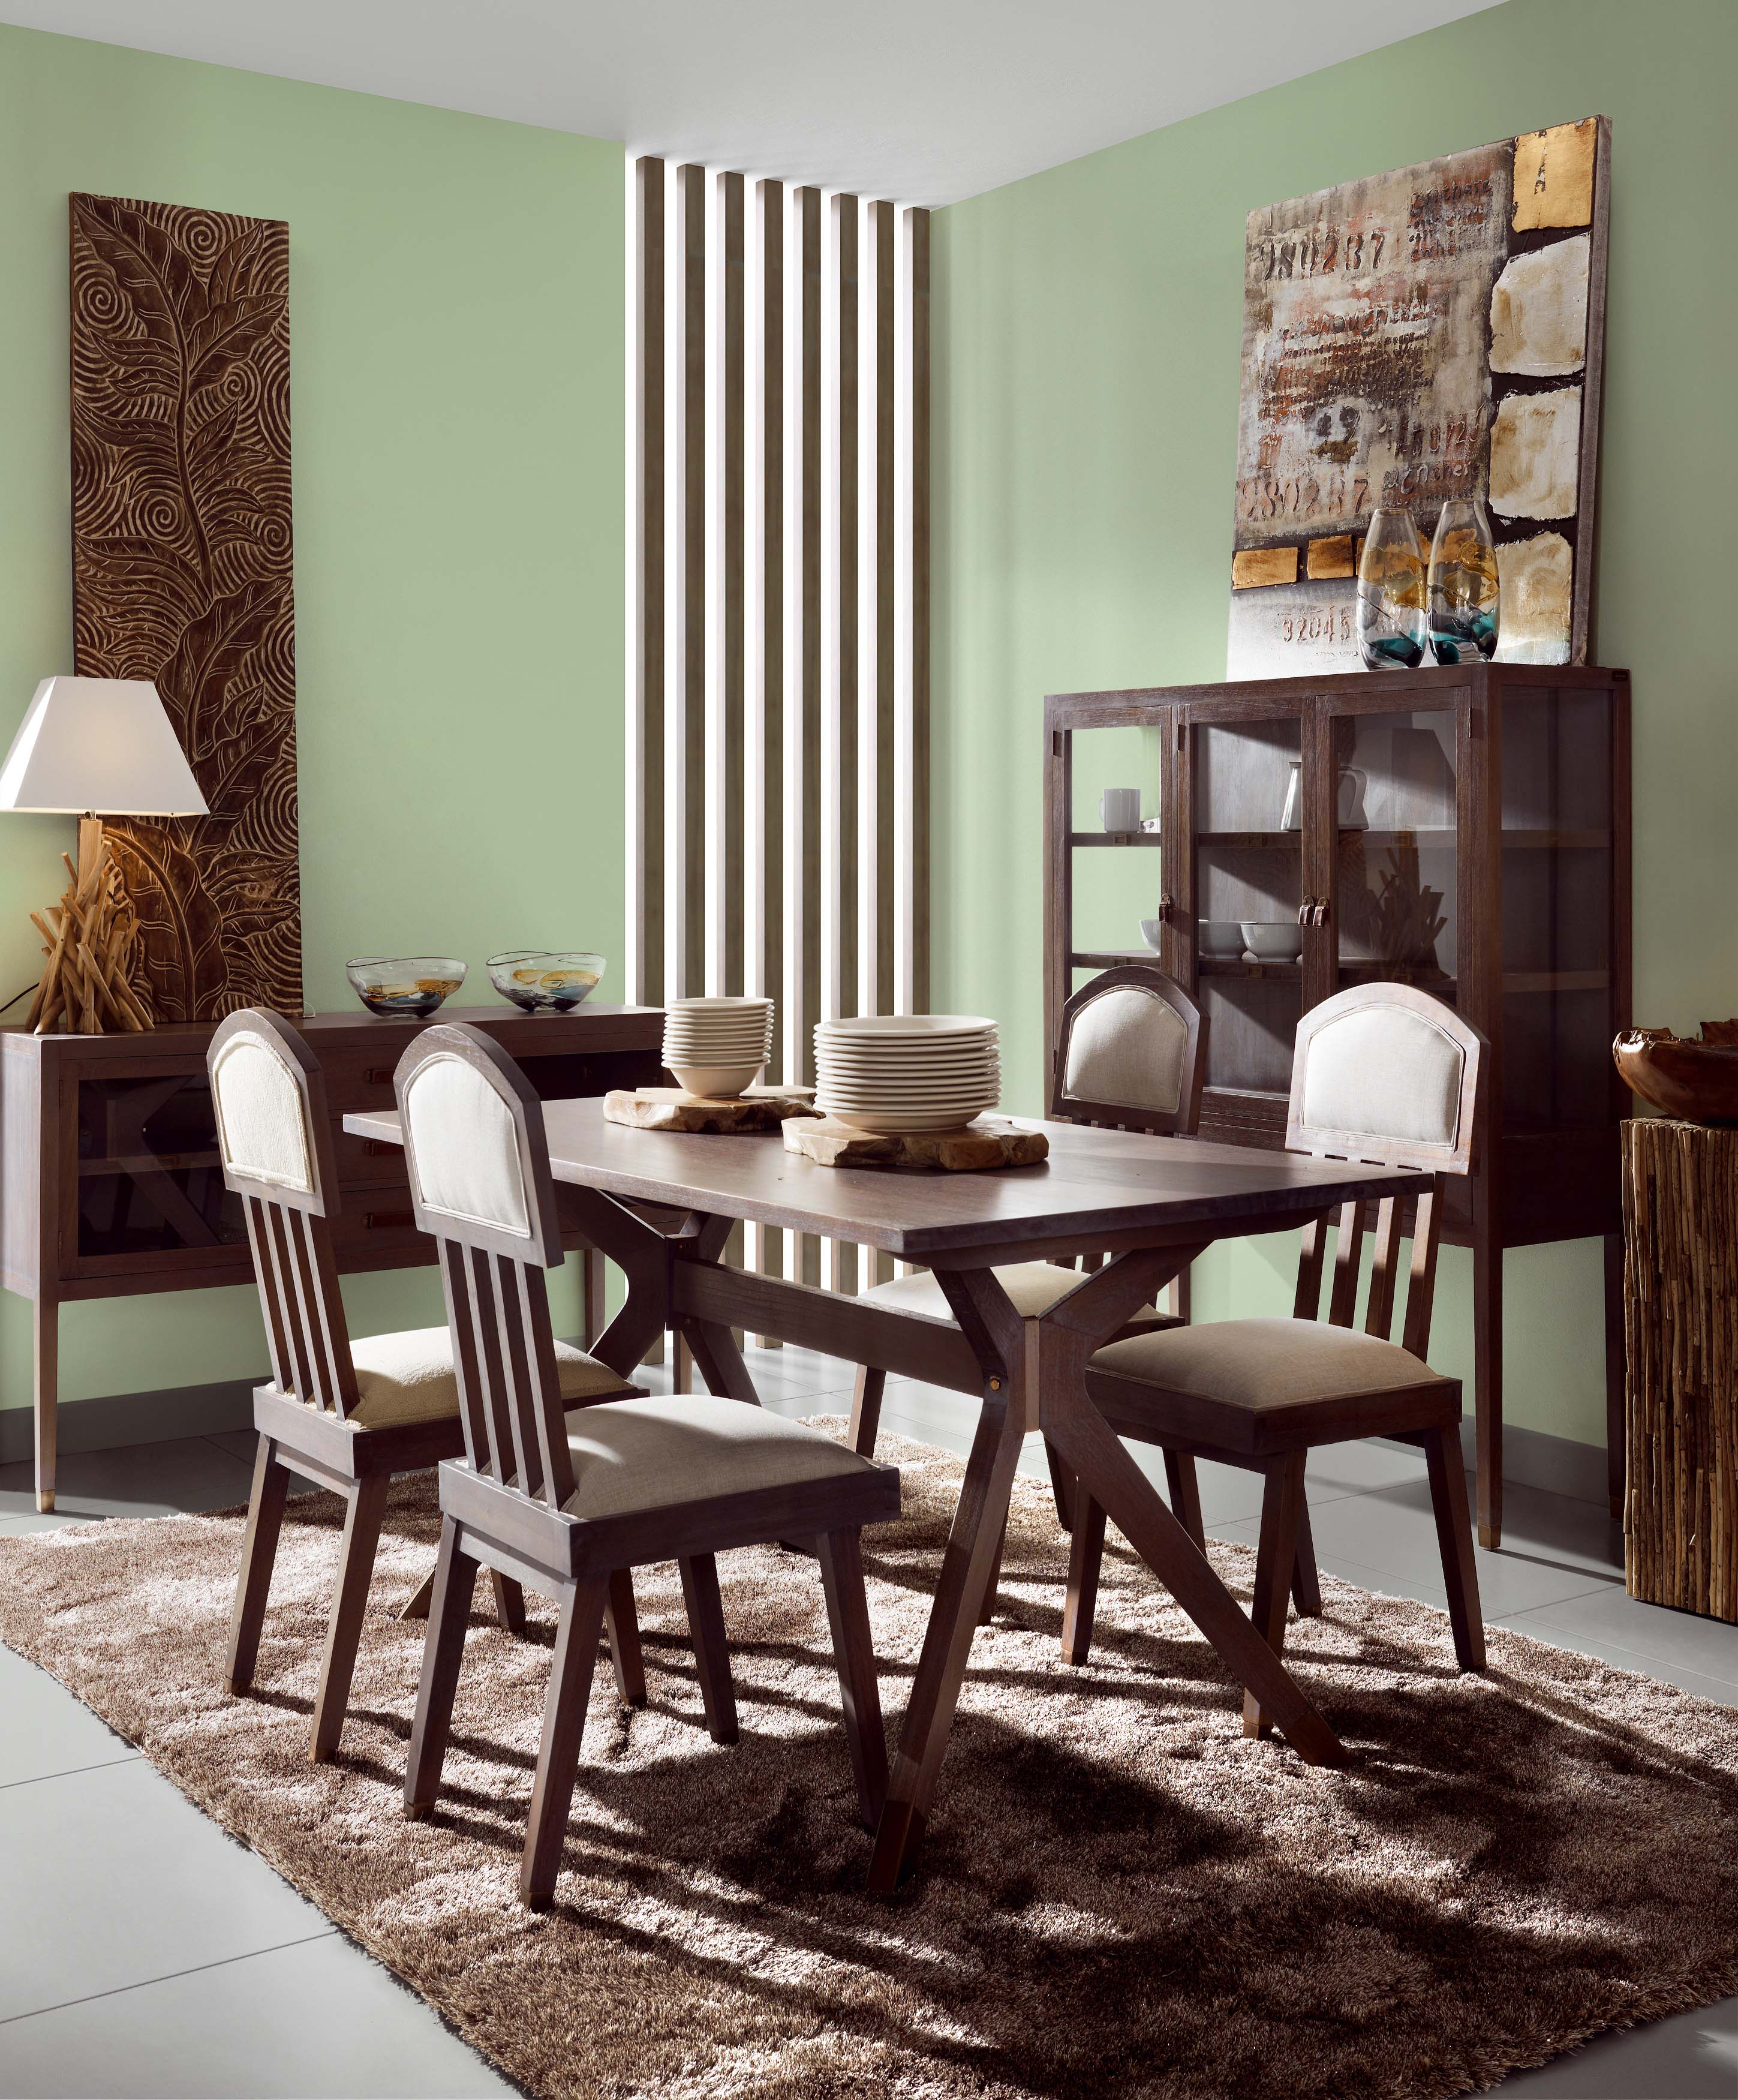 table salle manger avec rallonge en bois de mindi collection tana. Black Bedroom Furniture Sets. Home Design Ideas